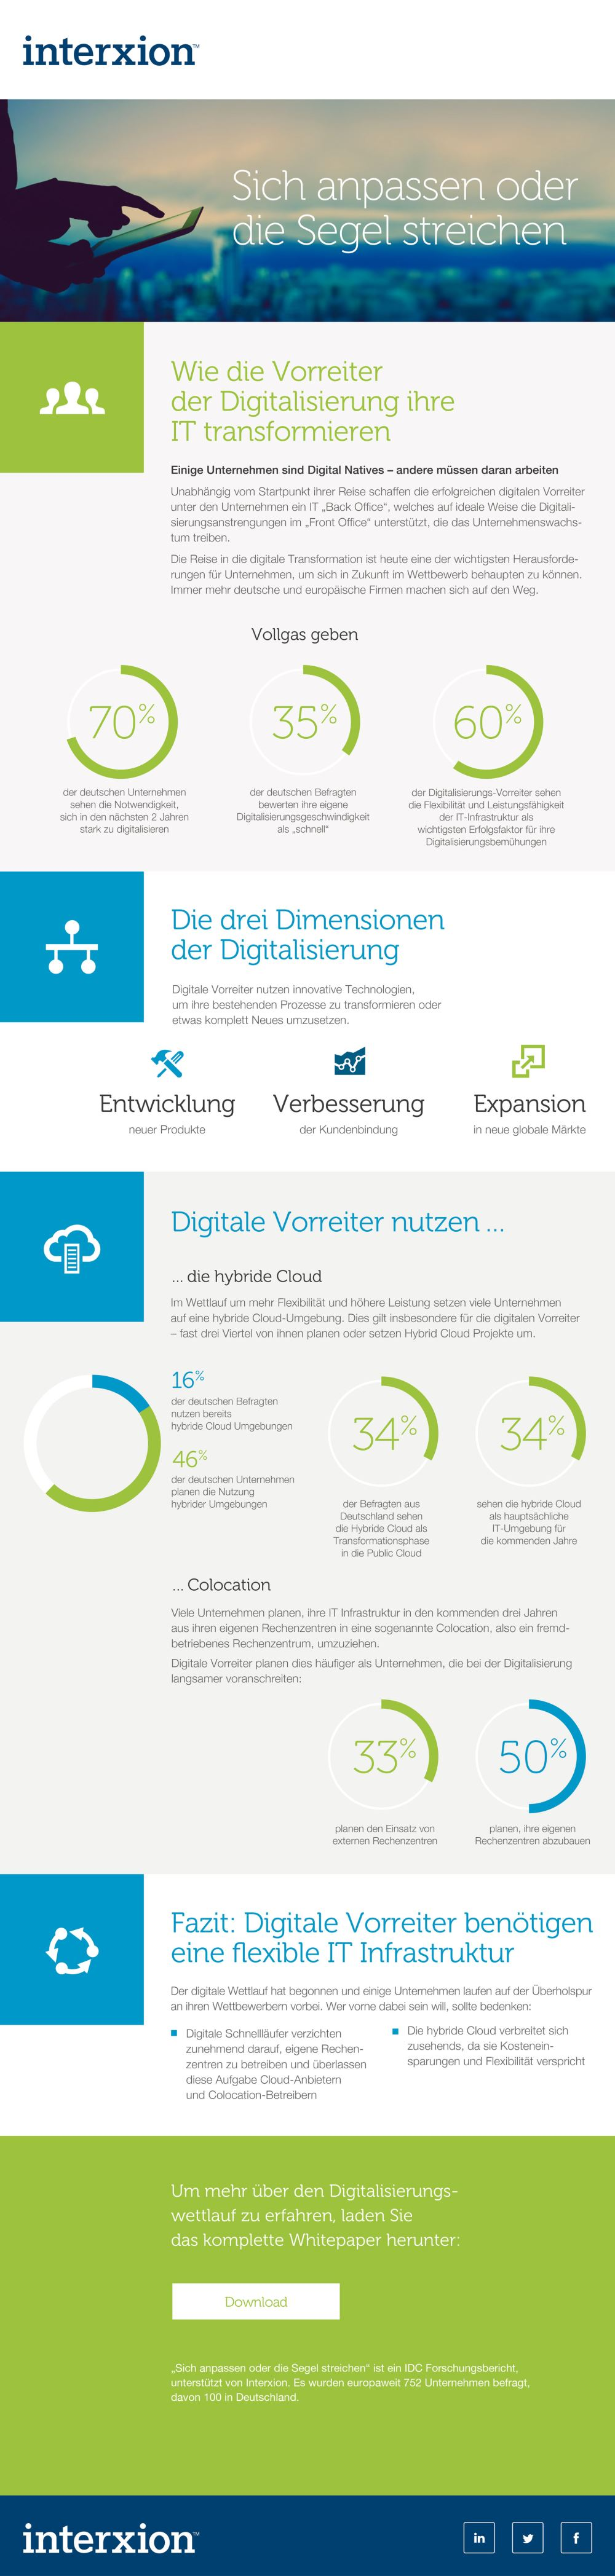 Hybrid Cloud - Study Interxion